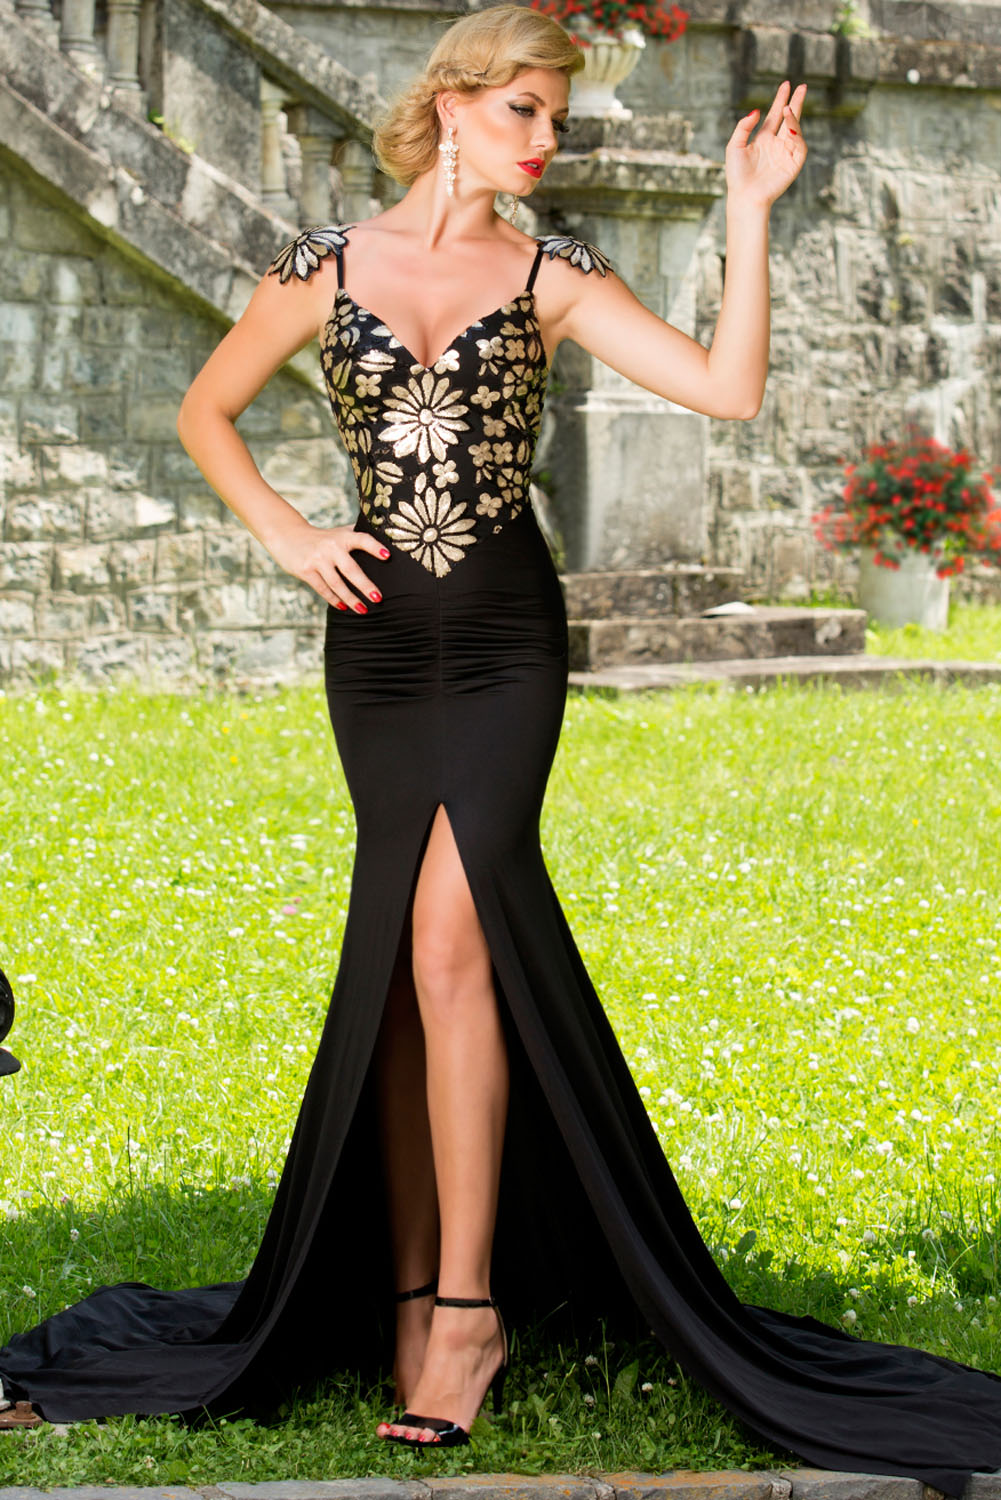 Aristocratic-Flowery-Paillette-Accent-Evening-Gown-LLC61080P-2-3